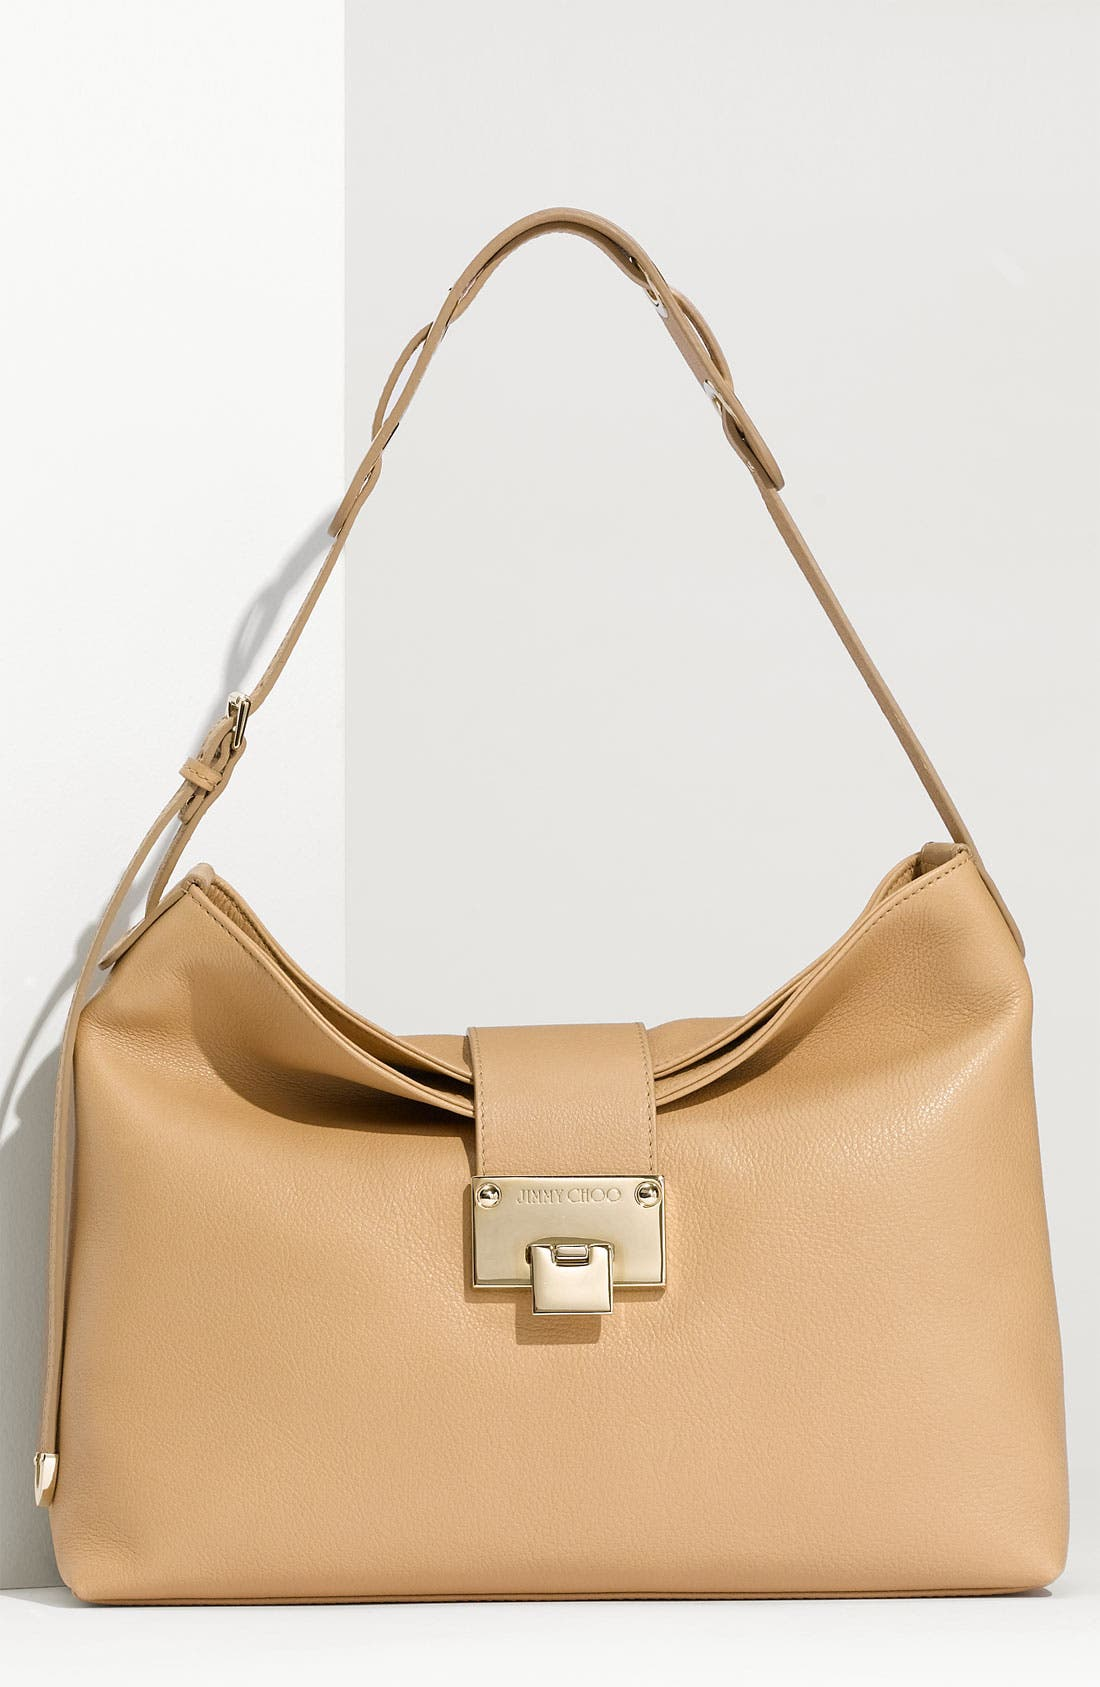 Alternate Image 1 Selected - Jimmy Choo 'Small Rachel' Grainy Calfskin Leather Shoulder Bag